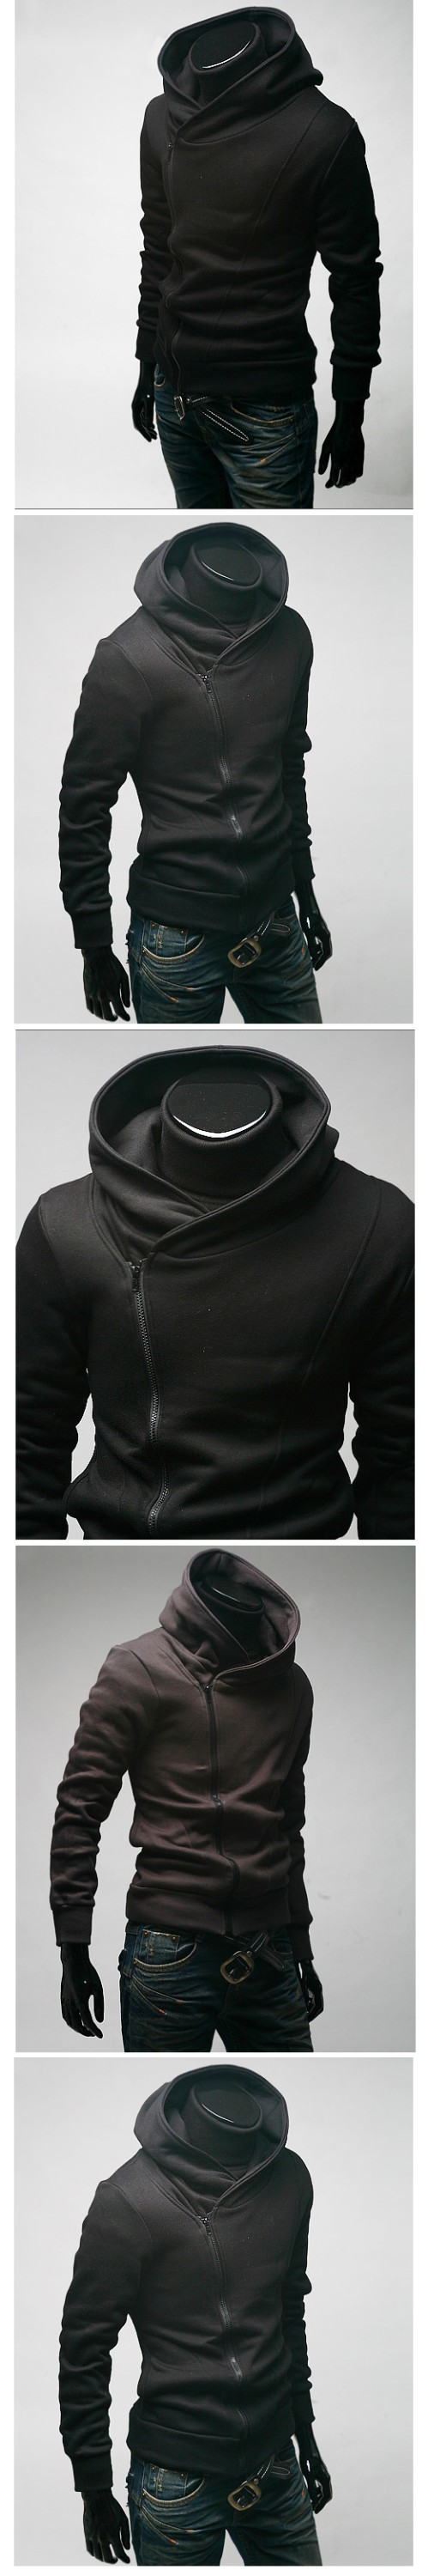 customized wholesale plain pullover hoodies,gym hoodie,sportswear hoodie